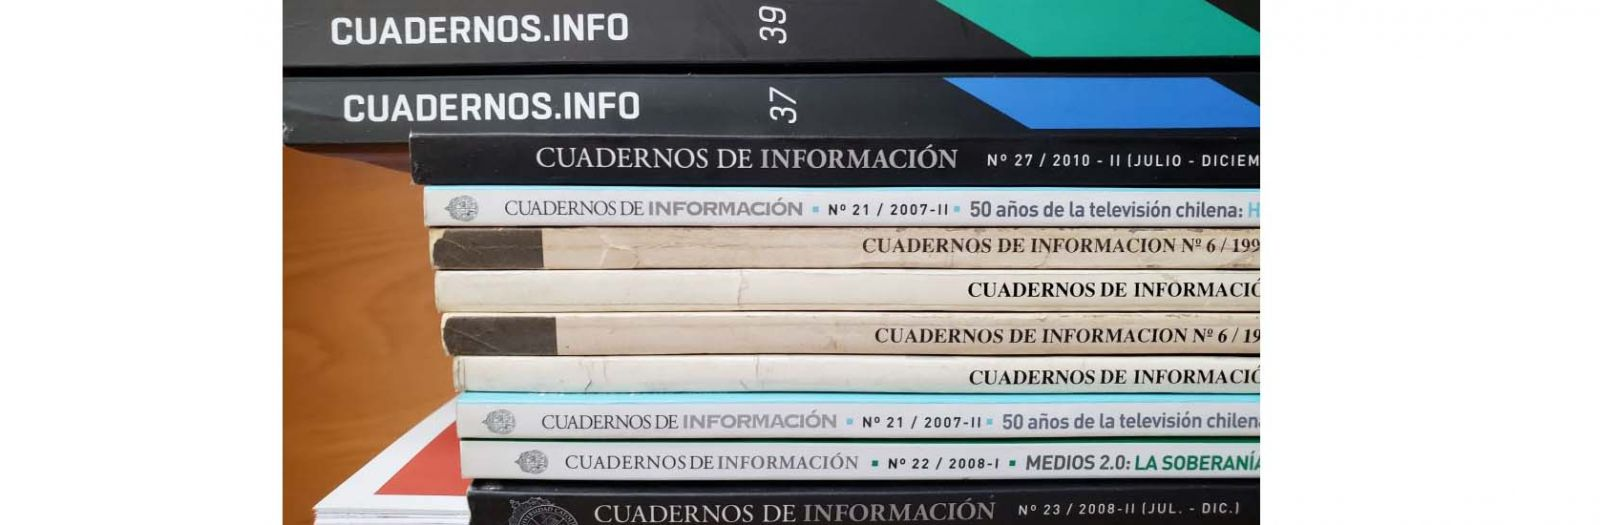 Cuadernos.info ingresa al Emerging Sources Citation Index de Web of Science